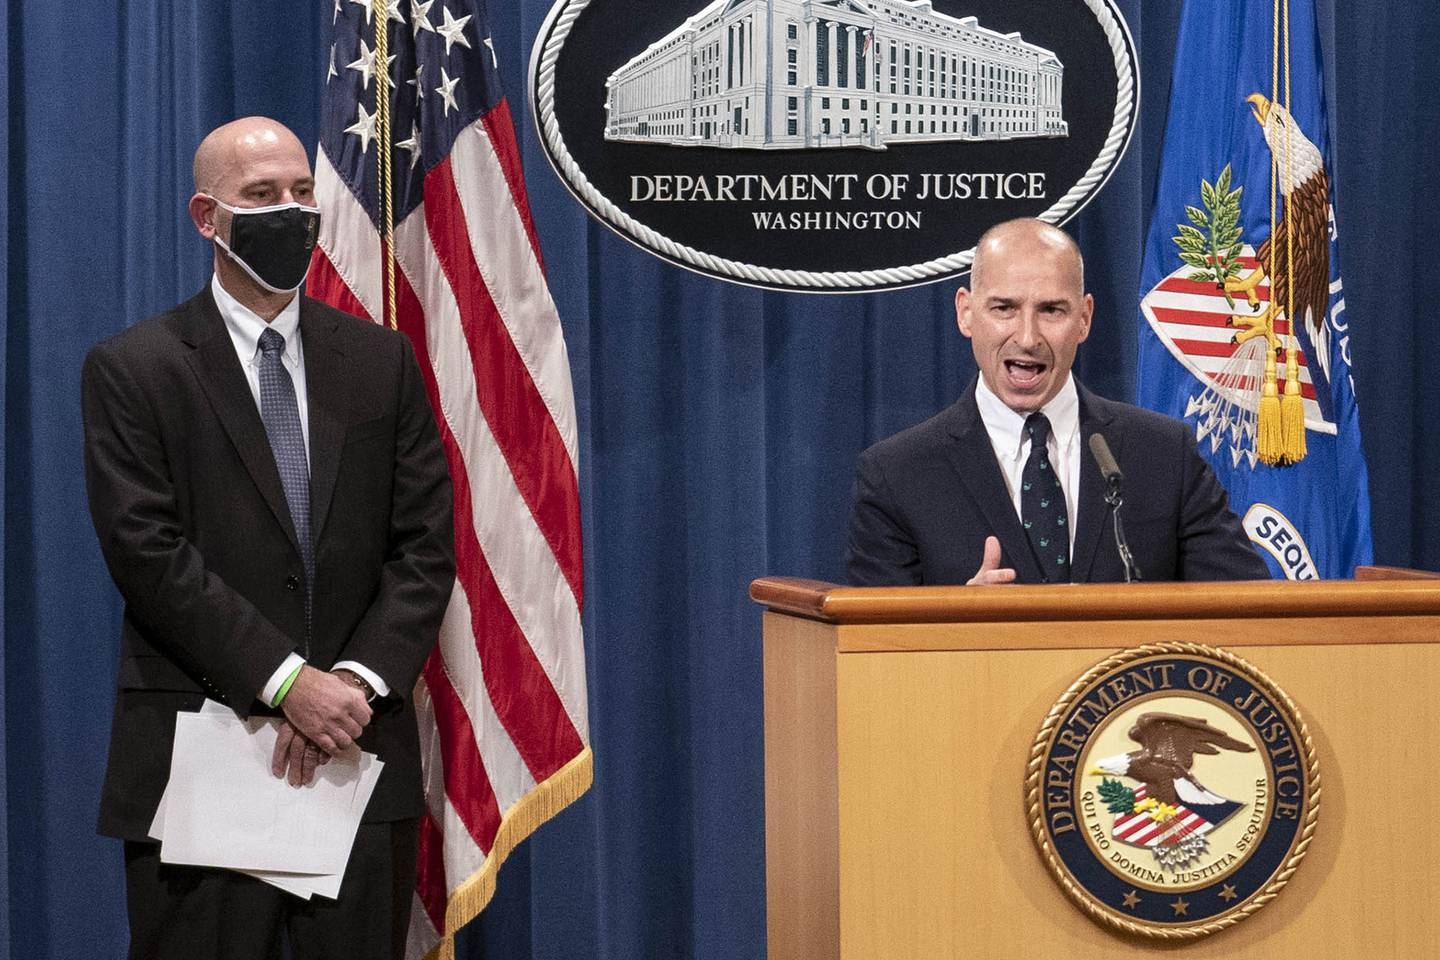 Steven D'Antuono, head of the FBI Washington field office, left, listens as acting U.S. Attorney Michael Sherwin, speaks during a news conference Tuesday, Jan. 12, 2021, in Washington.